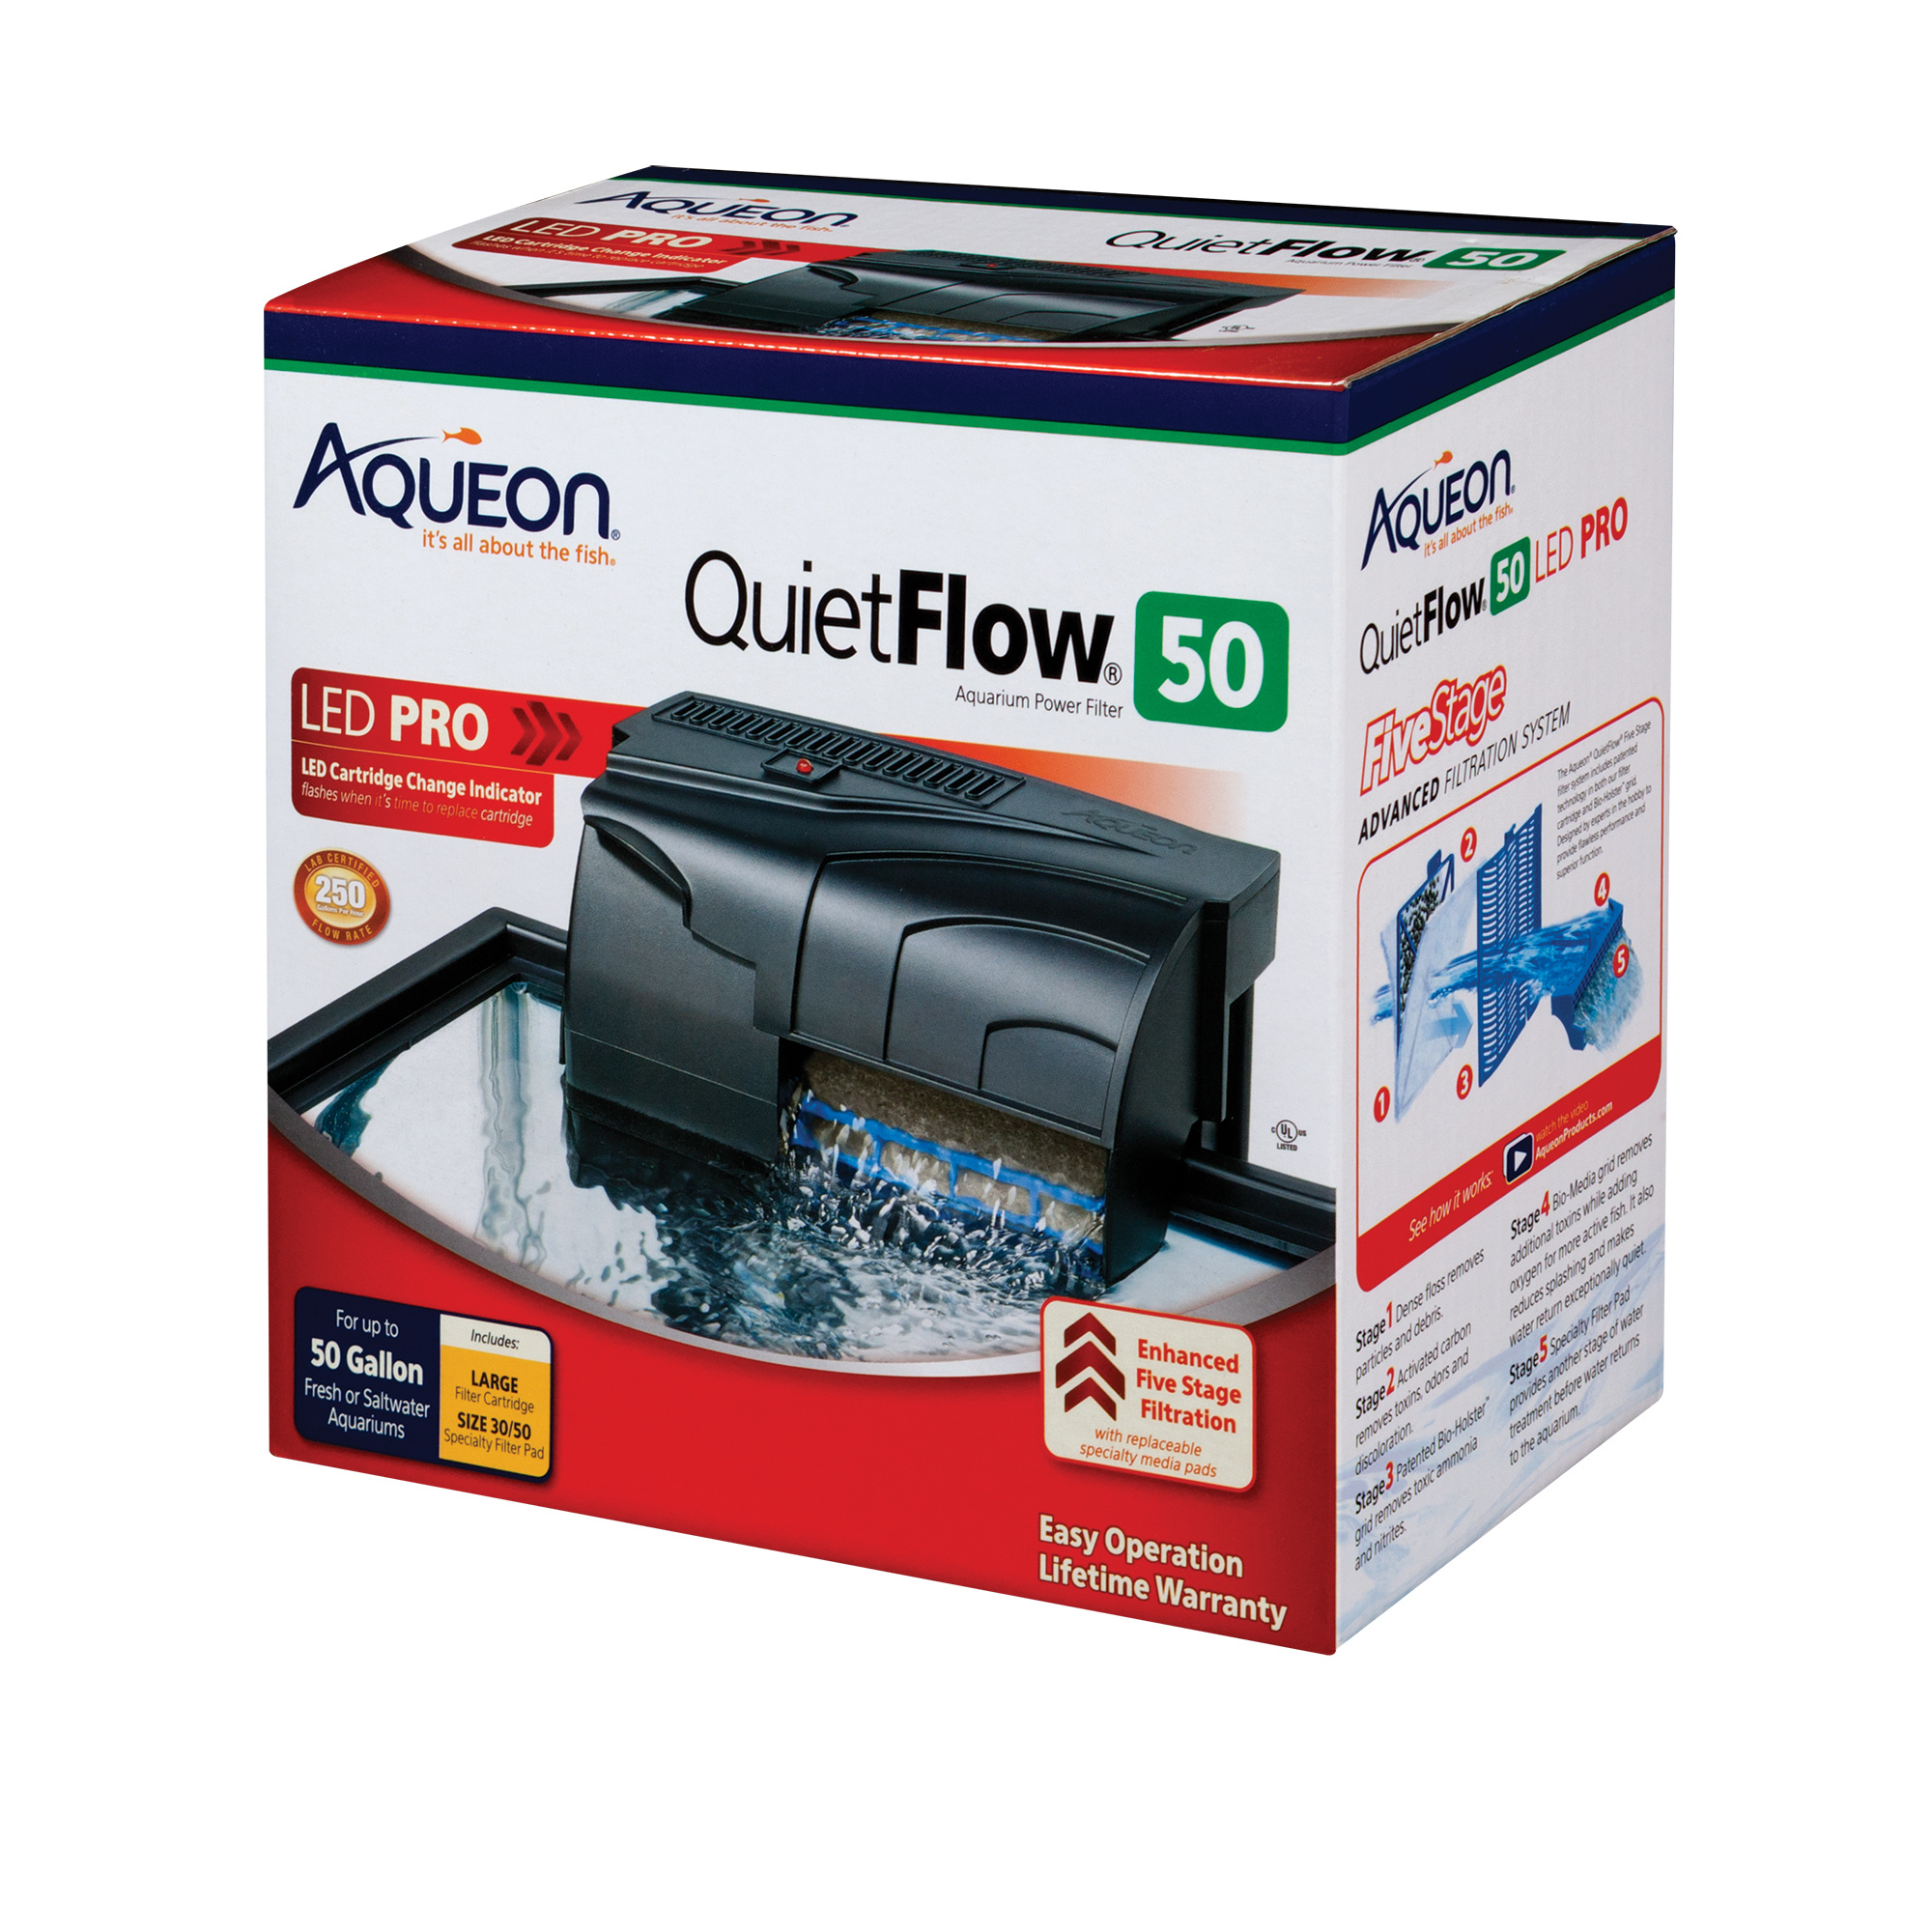 Aqueon Aqueon QuietFlow 50 Power Filter 50gal